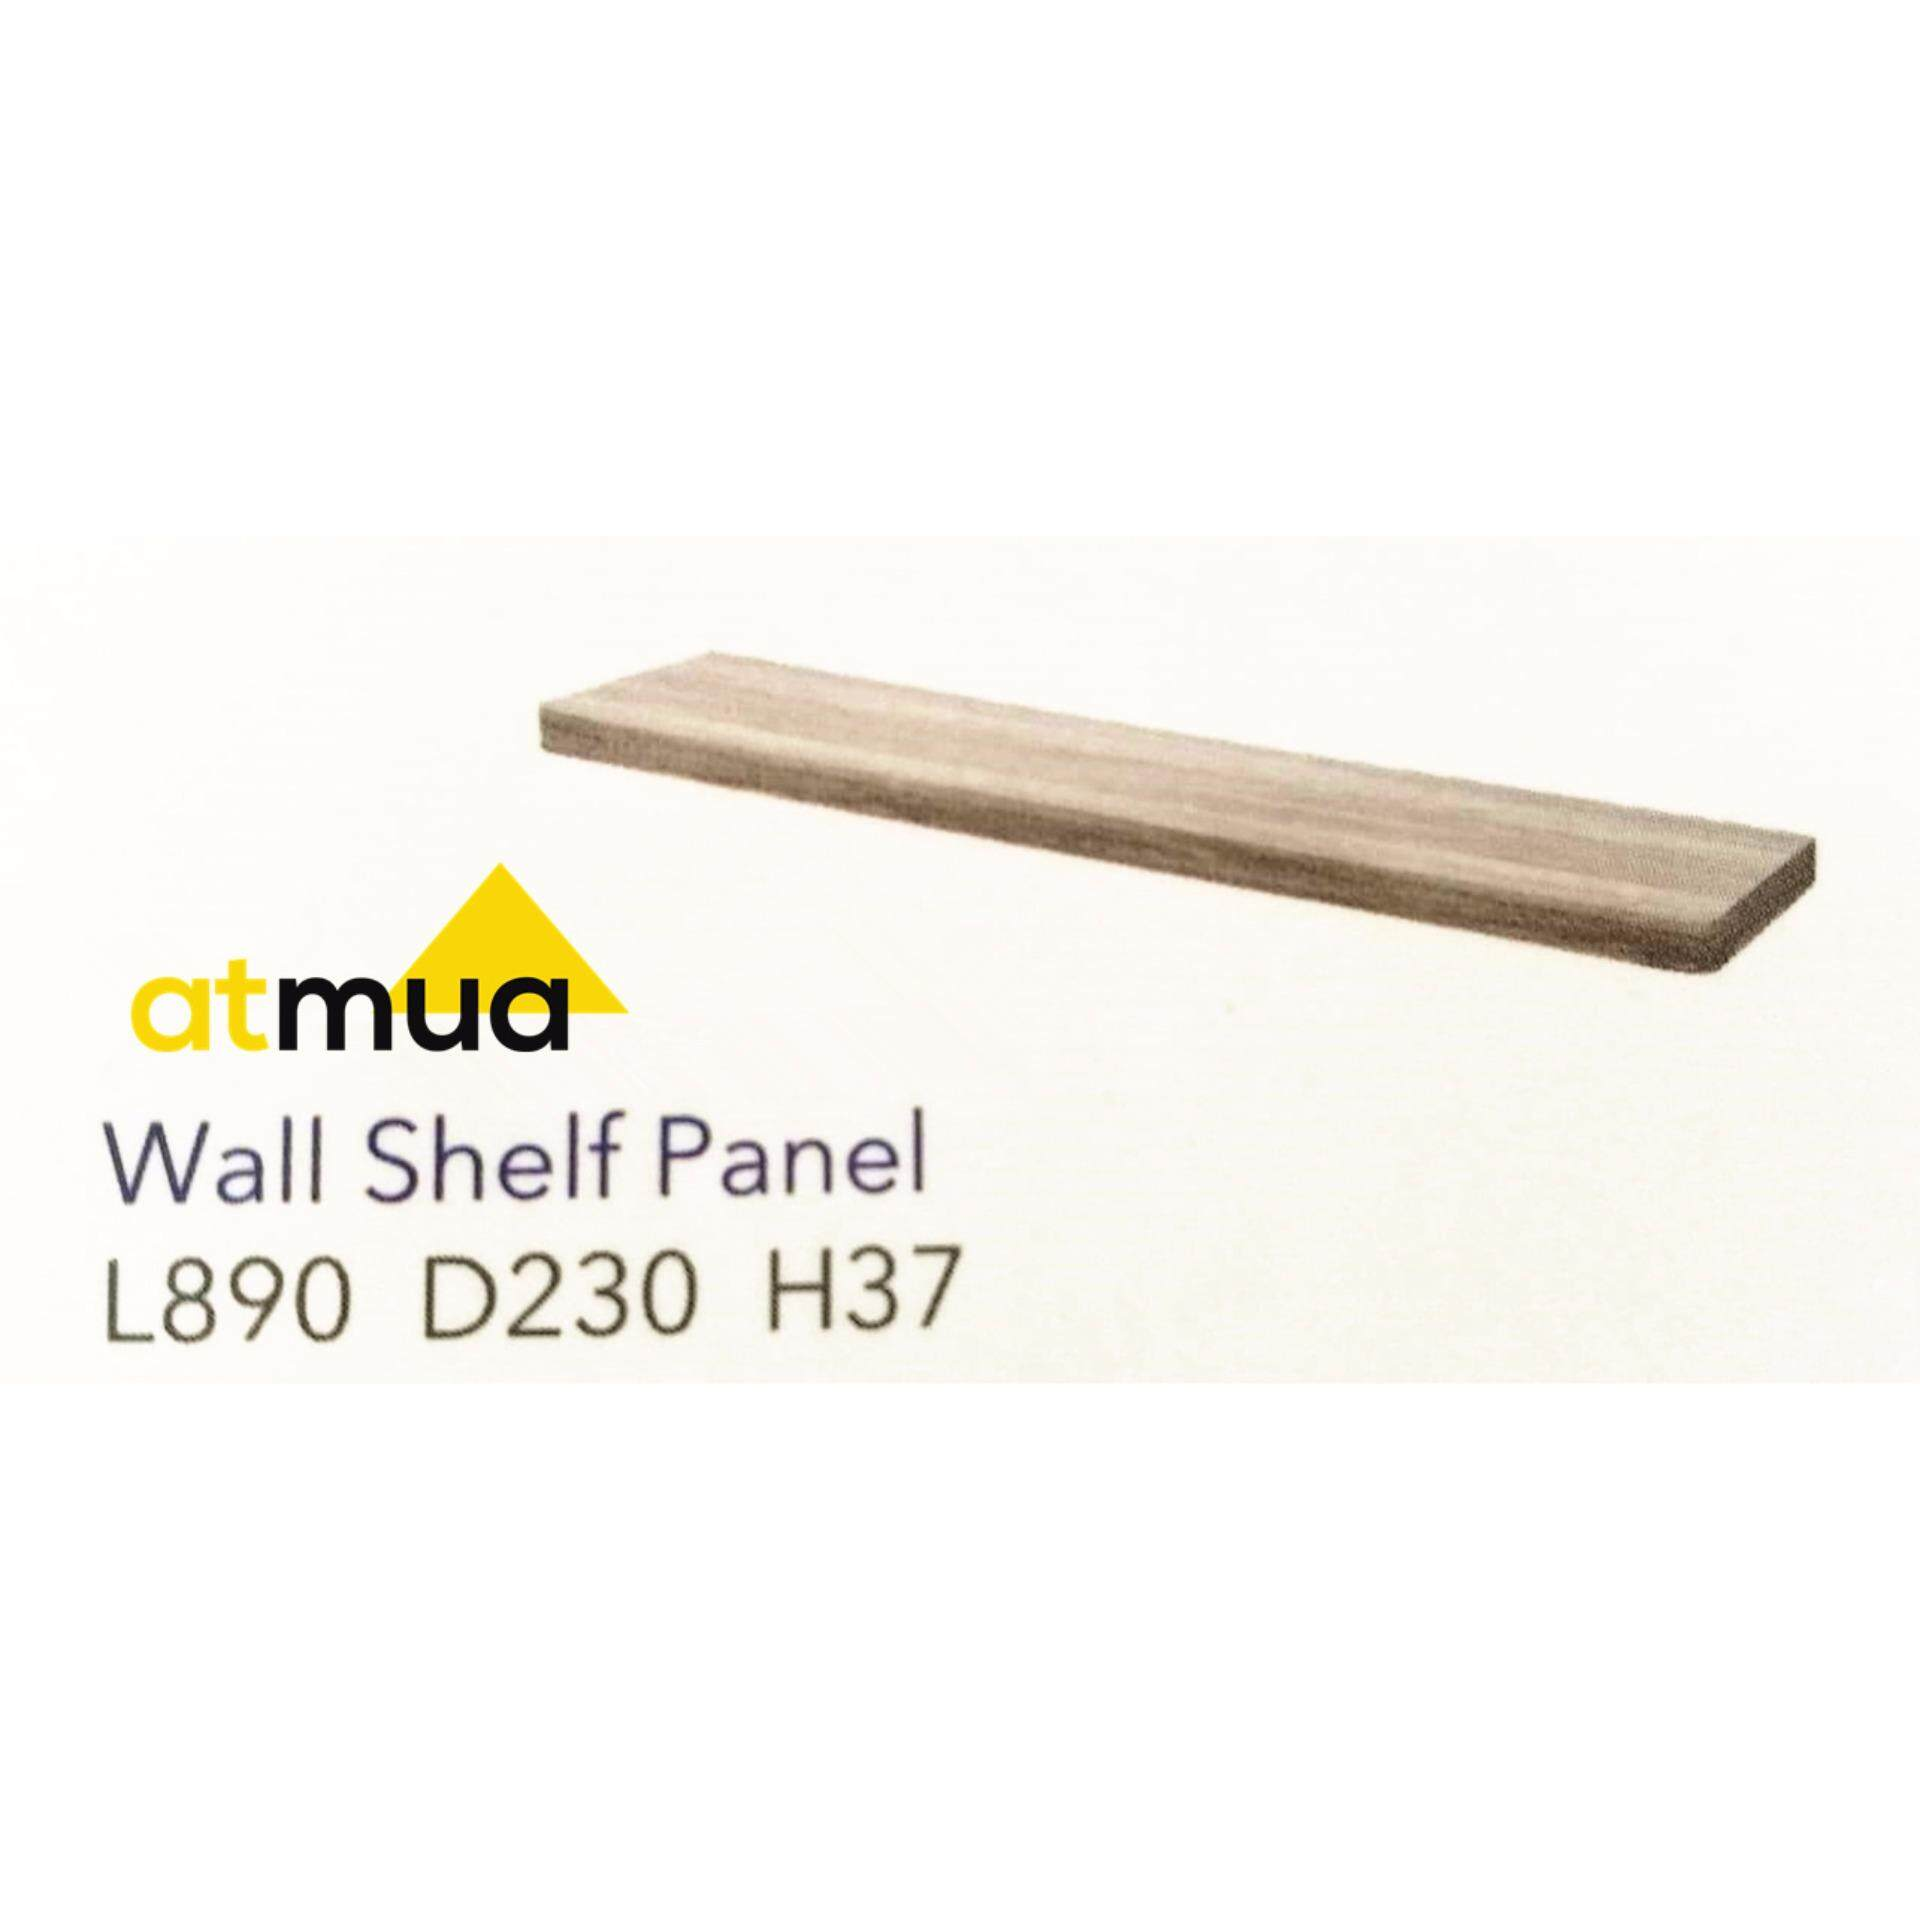 Atmua Tape Wall Shelf Panel (3 Feet) [MDF Board]